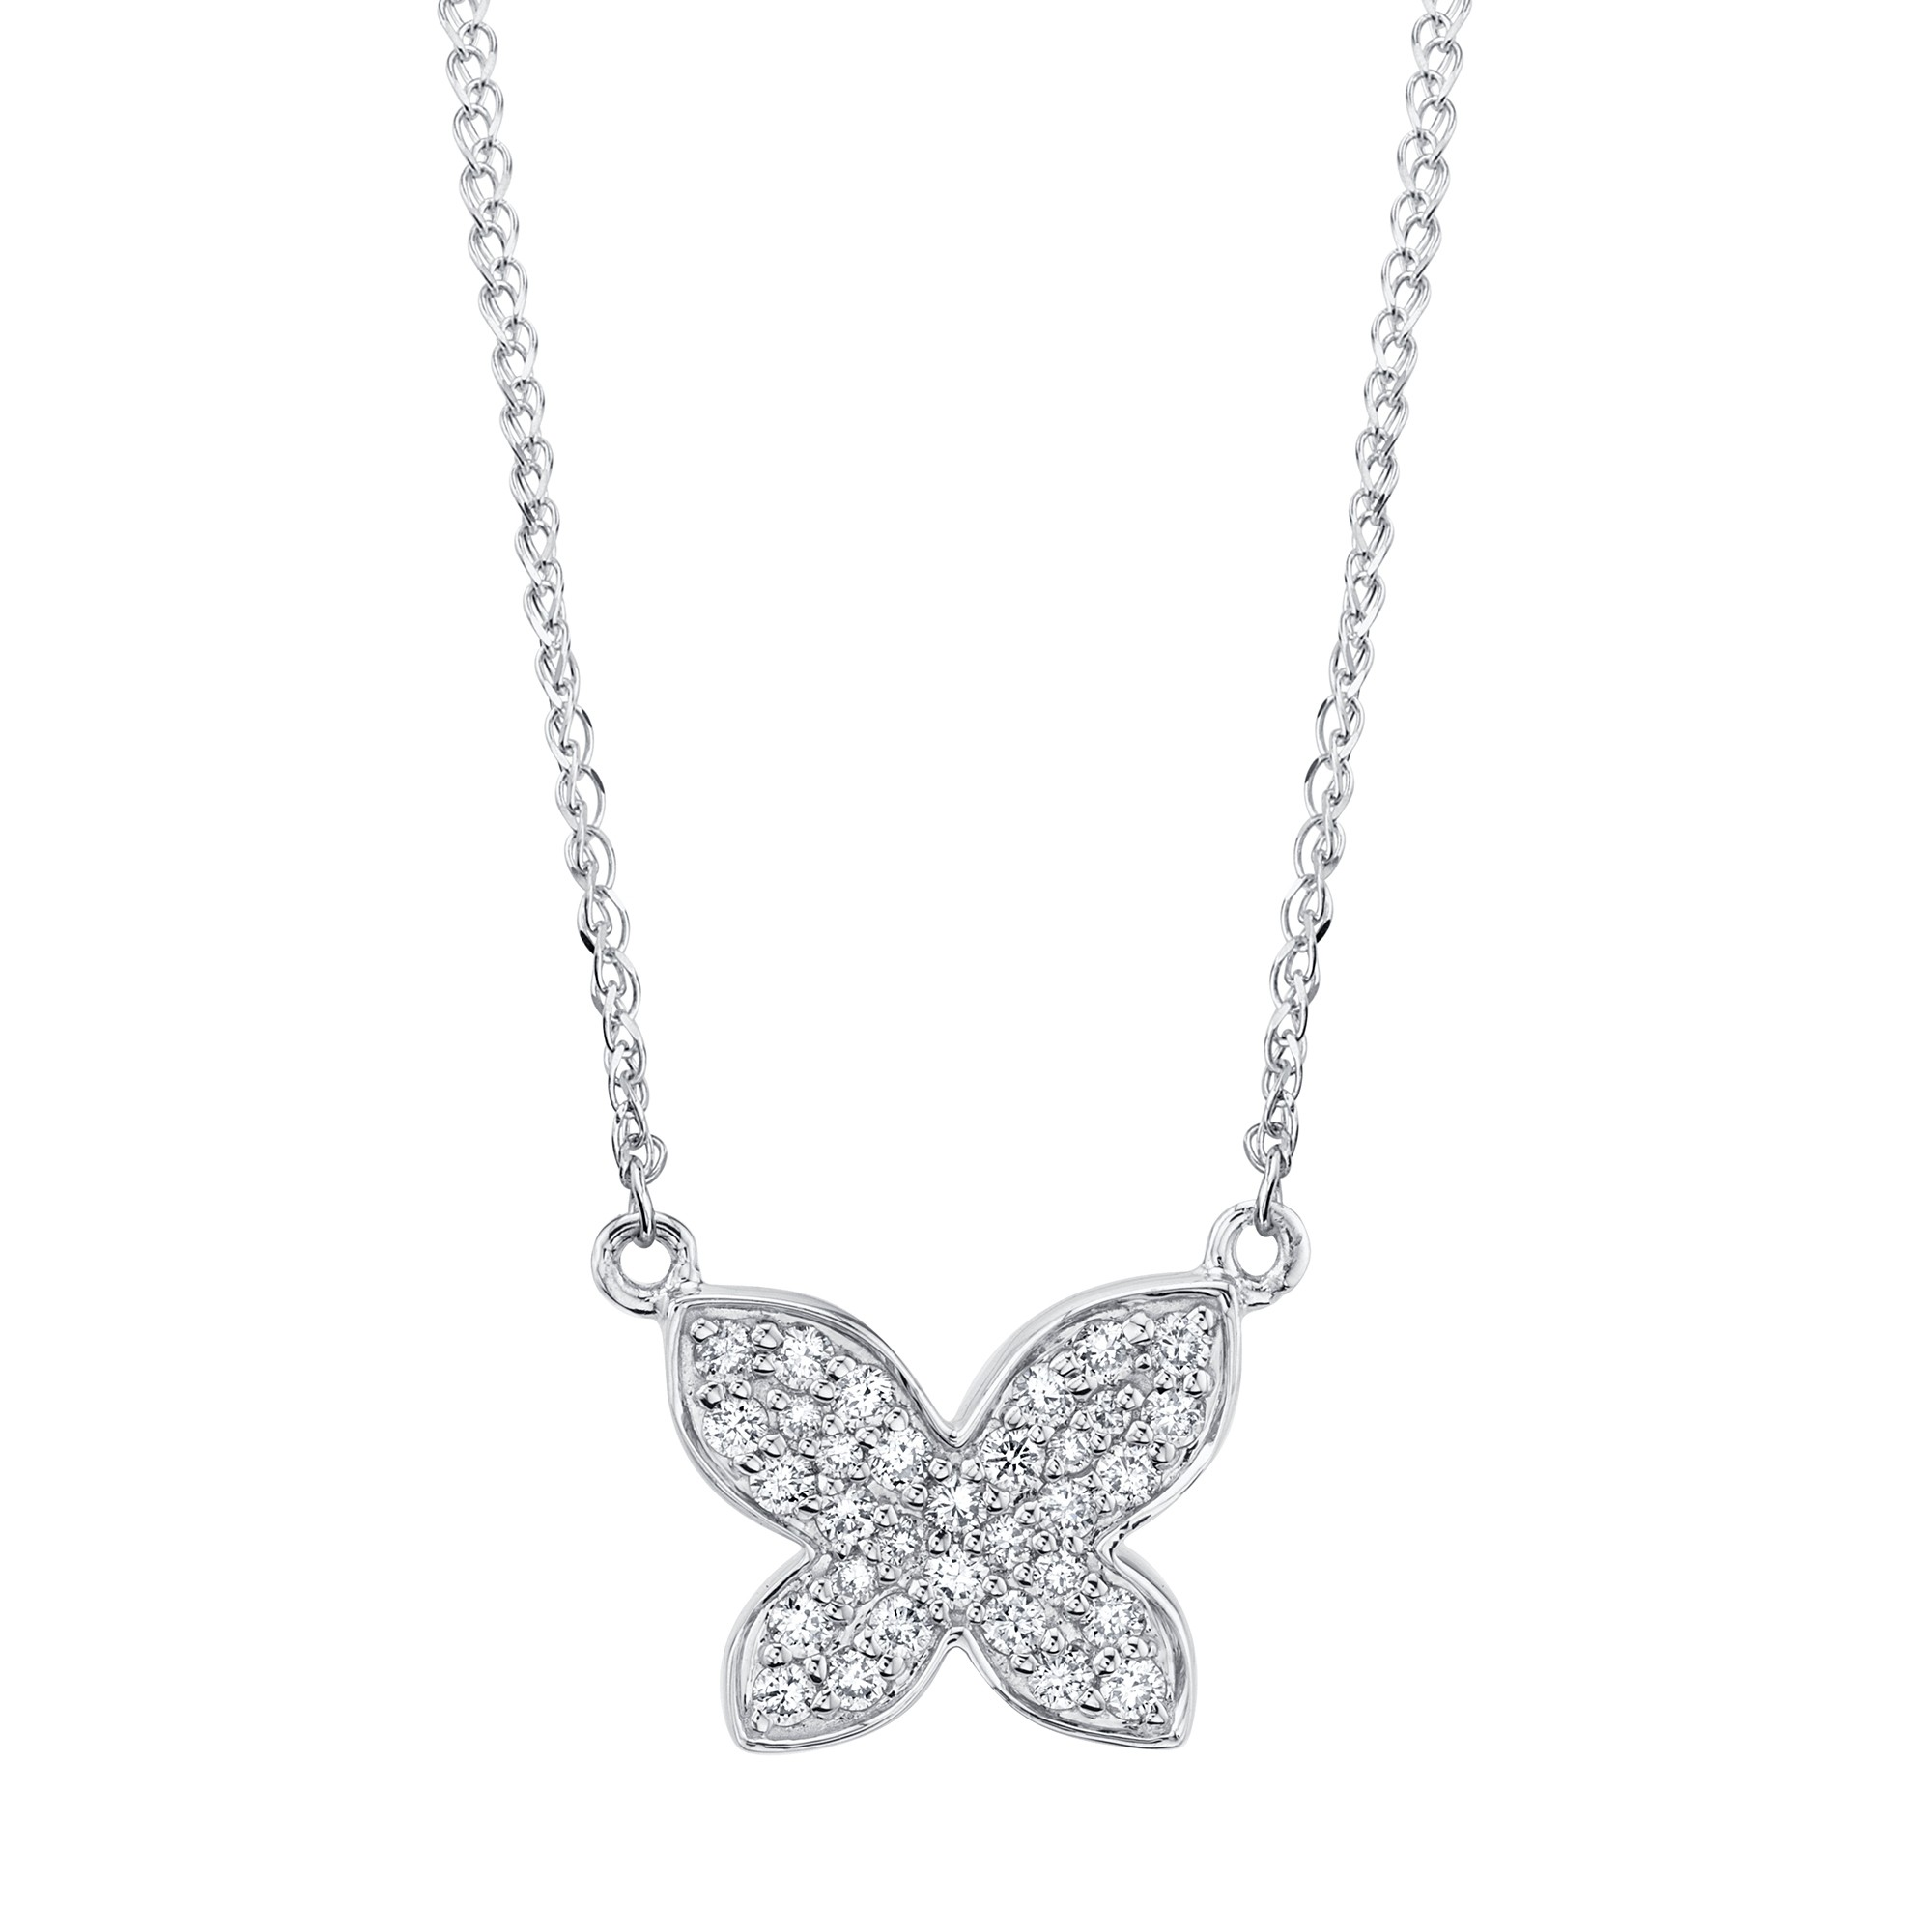 14k White Gold Diamond Floating Butterfly Necklace